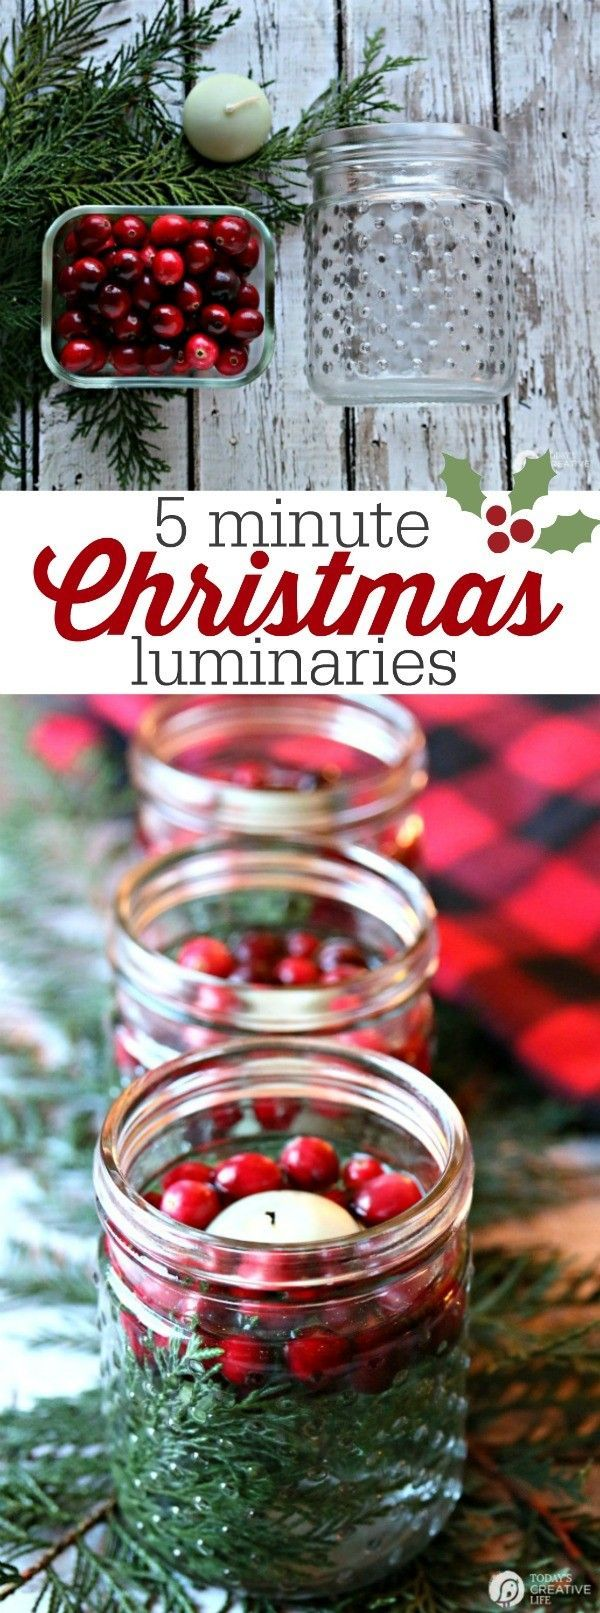 Christmas table decoration ideas for parties - 5 Minute Cranberry Cedar Christmas Luminaries Christmas Party Decorationschristmas